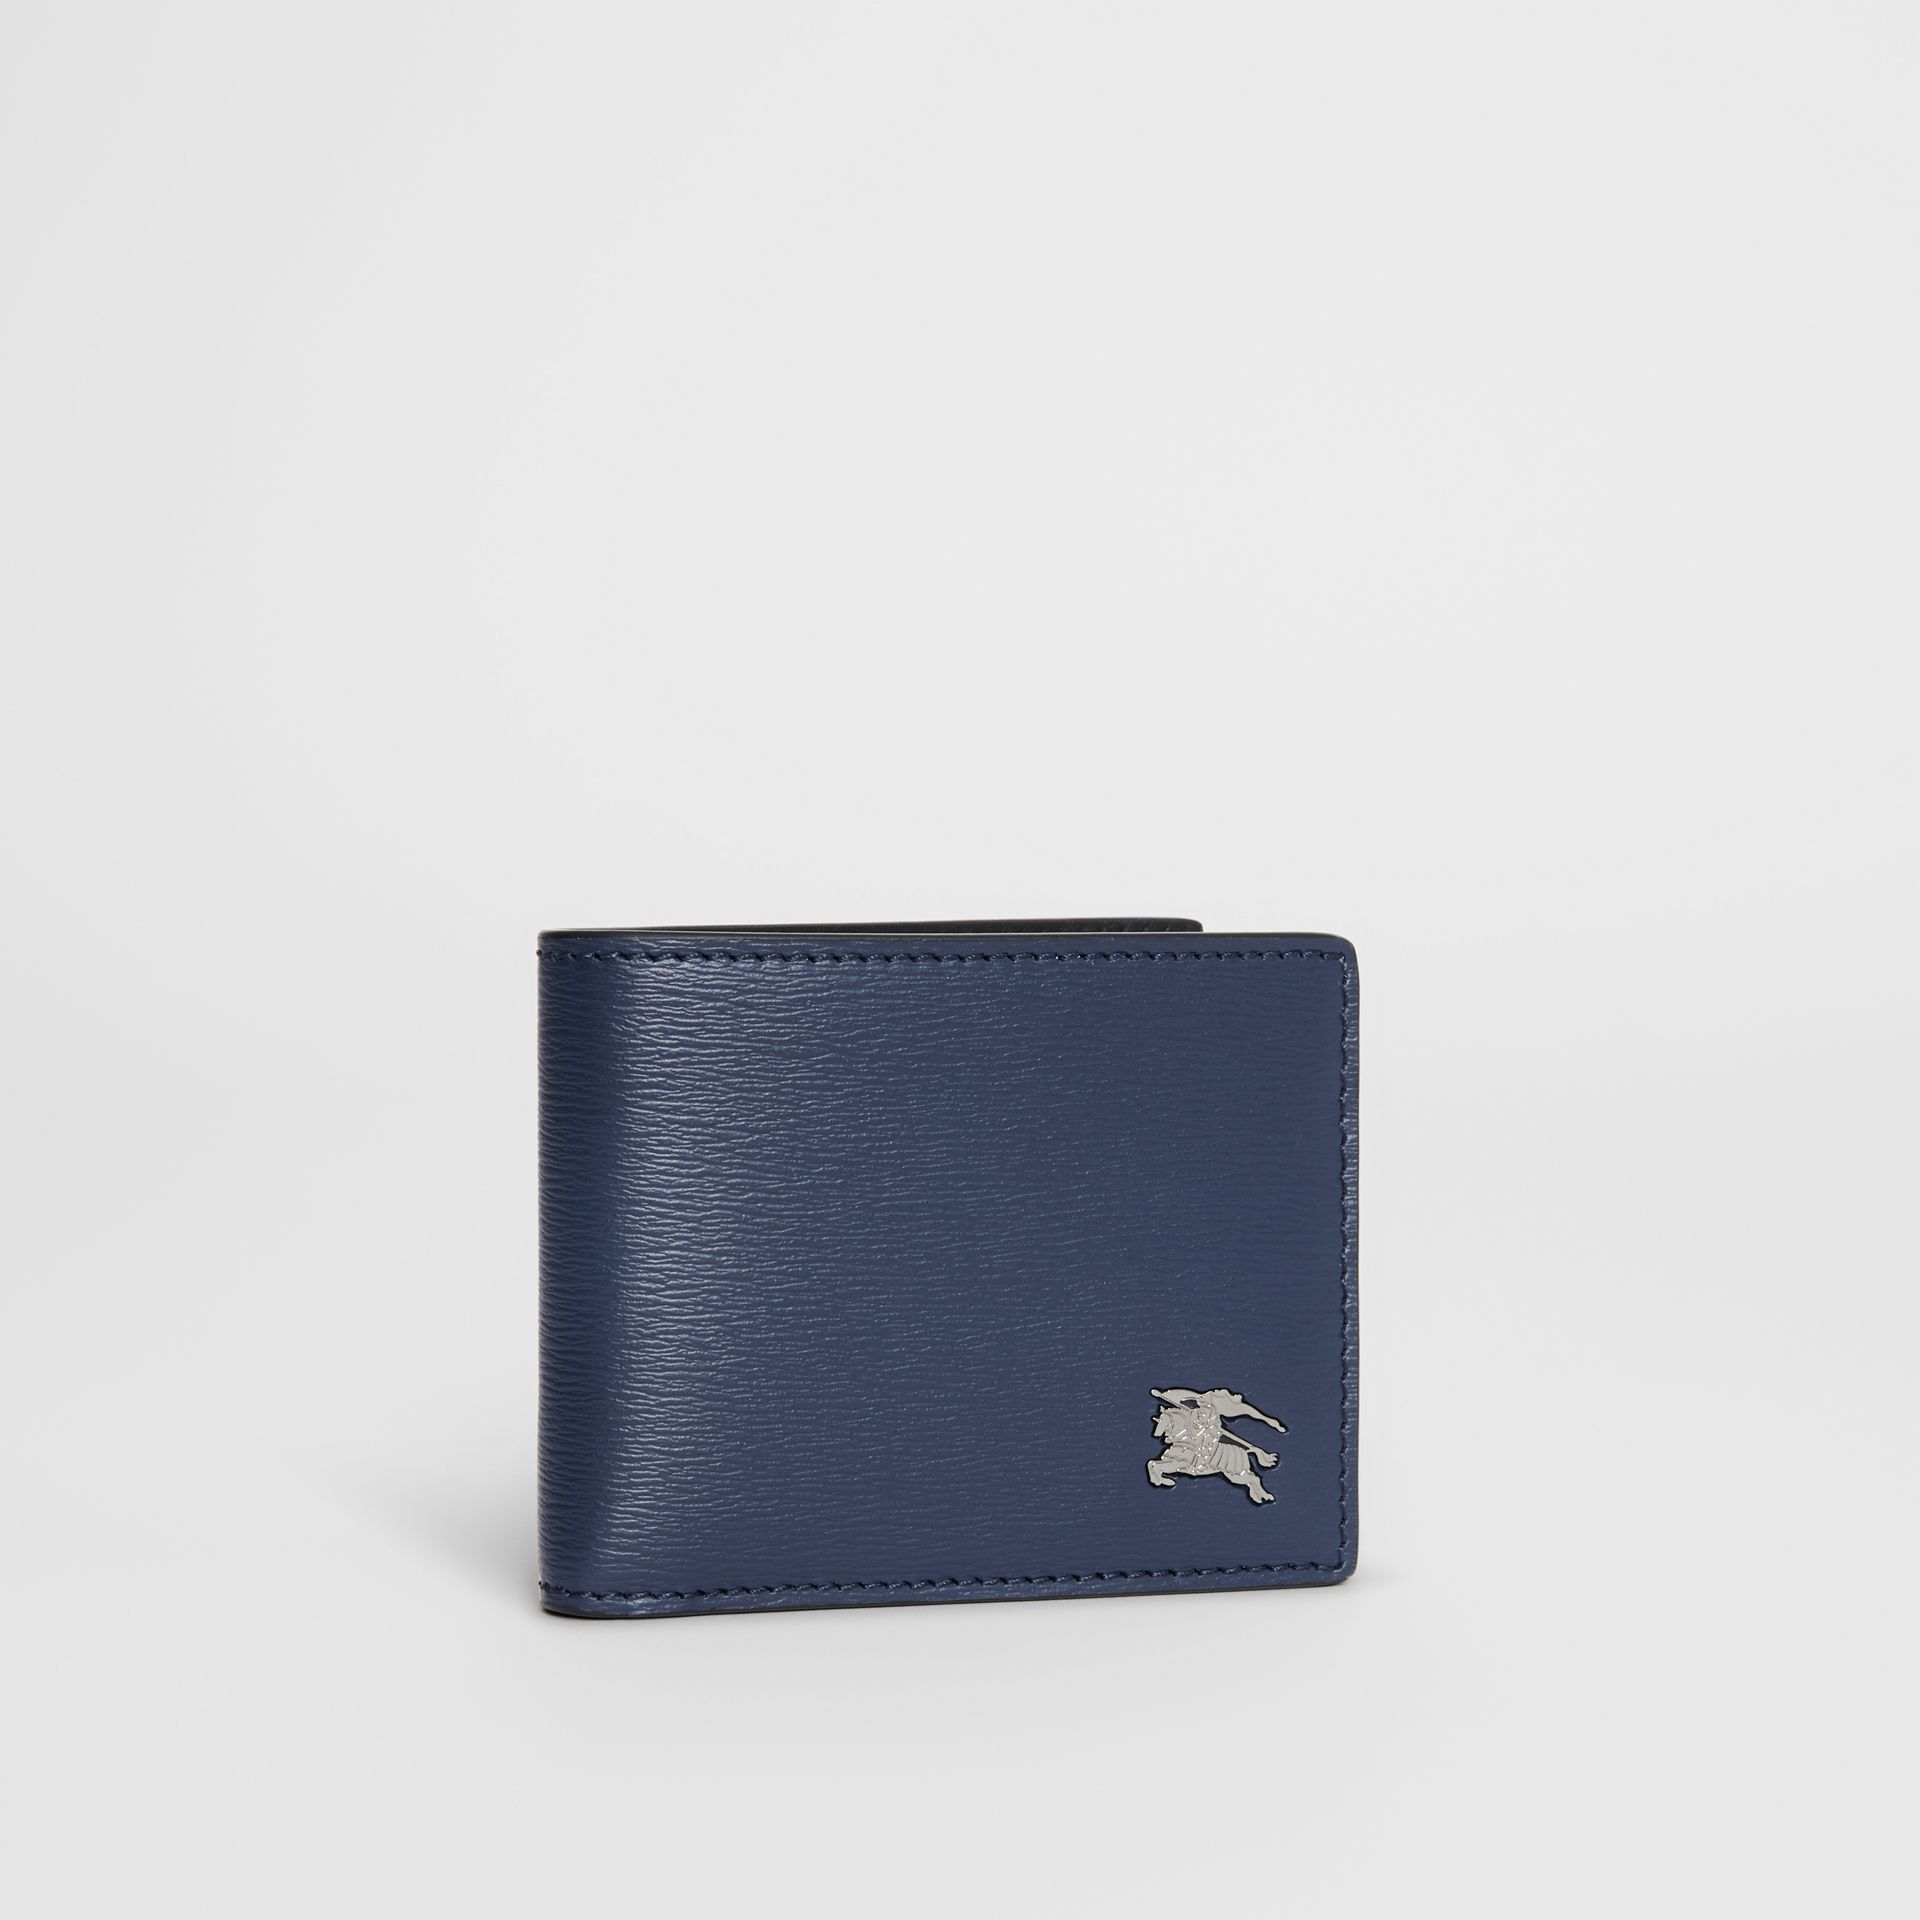 London Leather Bifold Wallet in Navy - Men | Burberry - gallery image 3